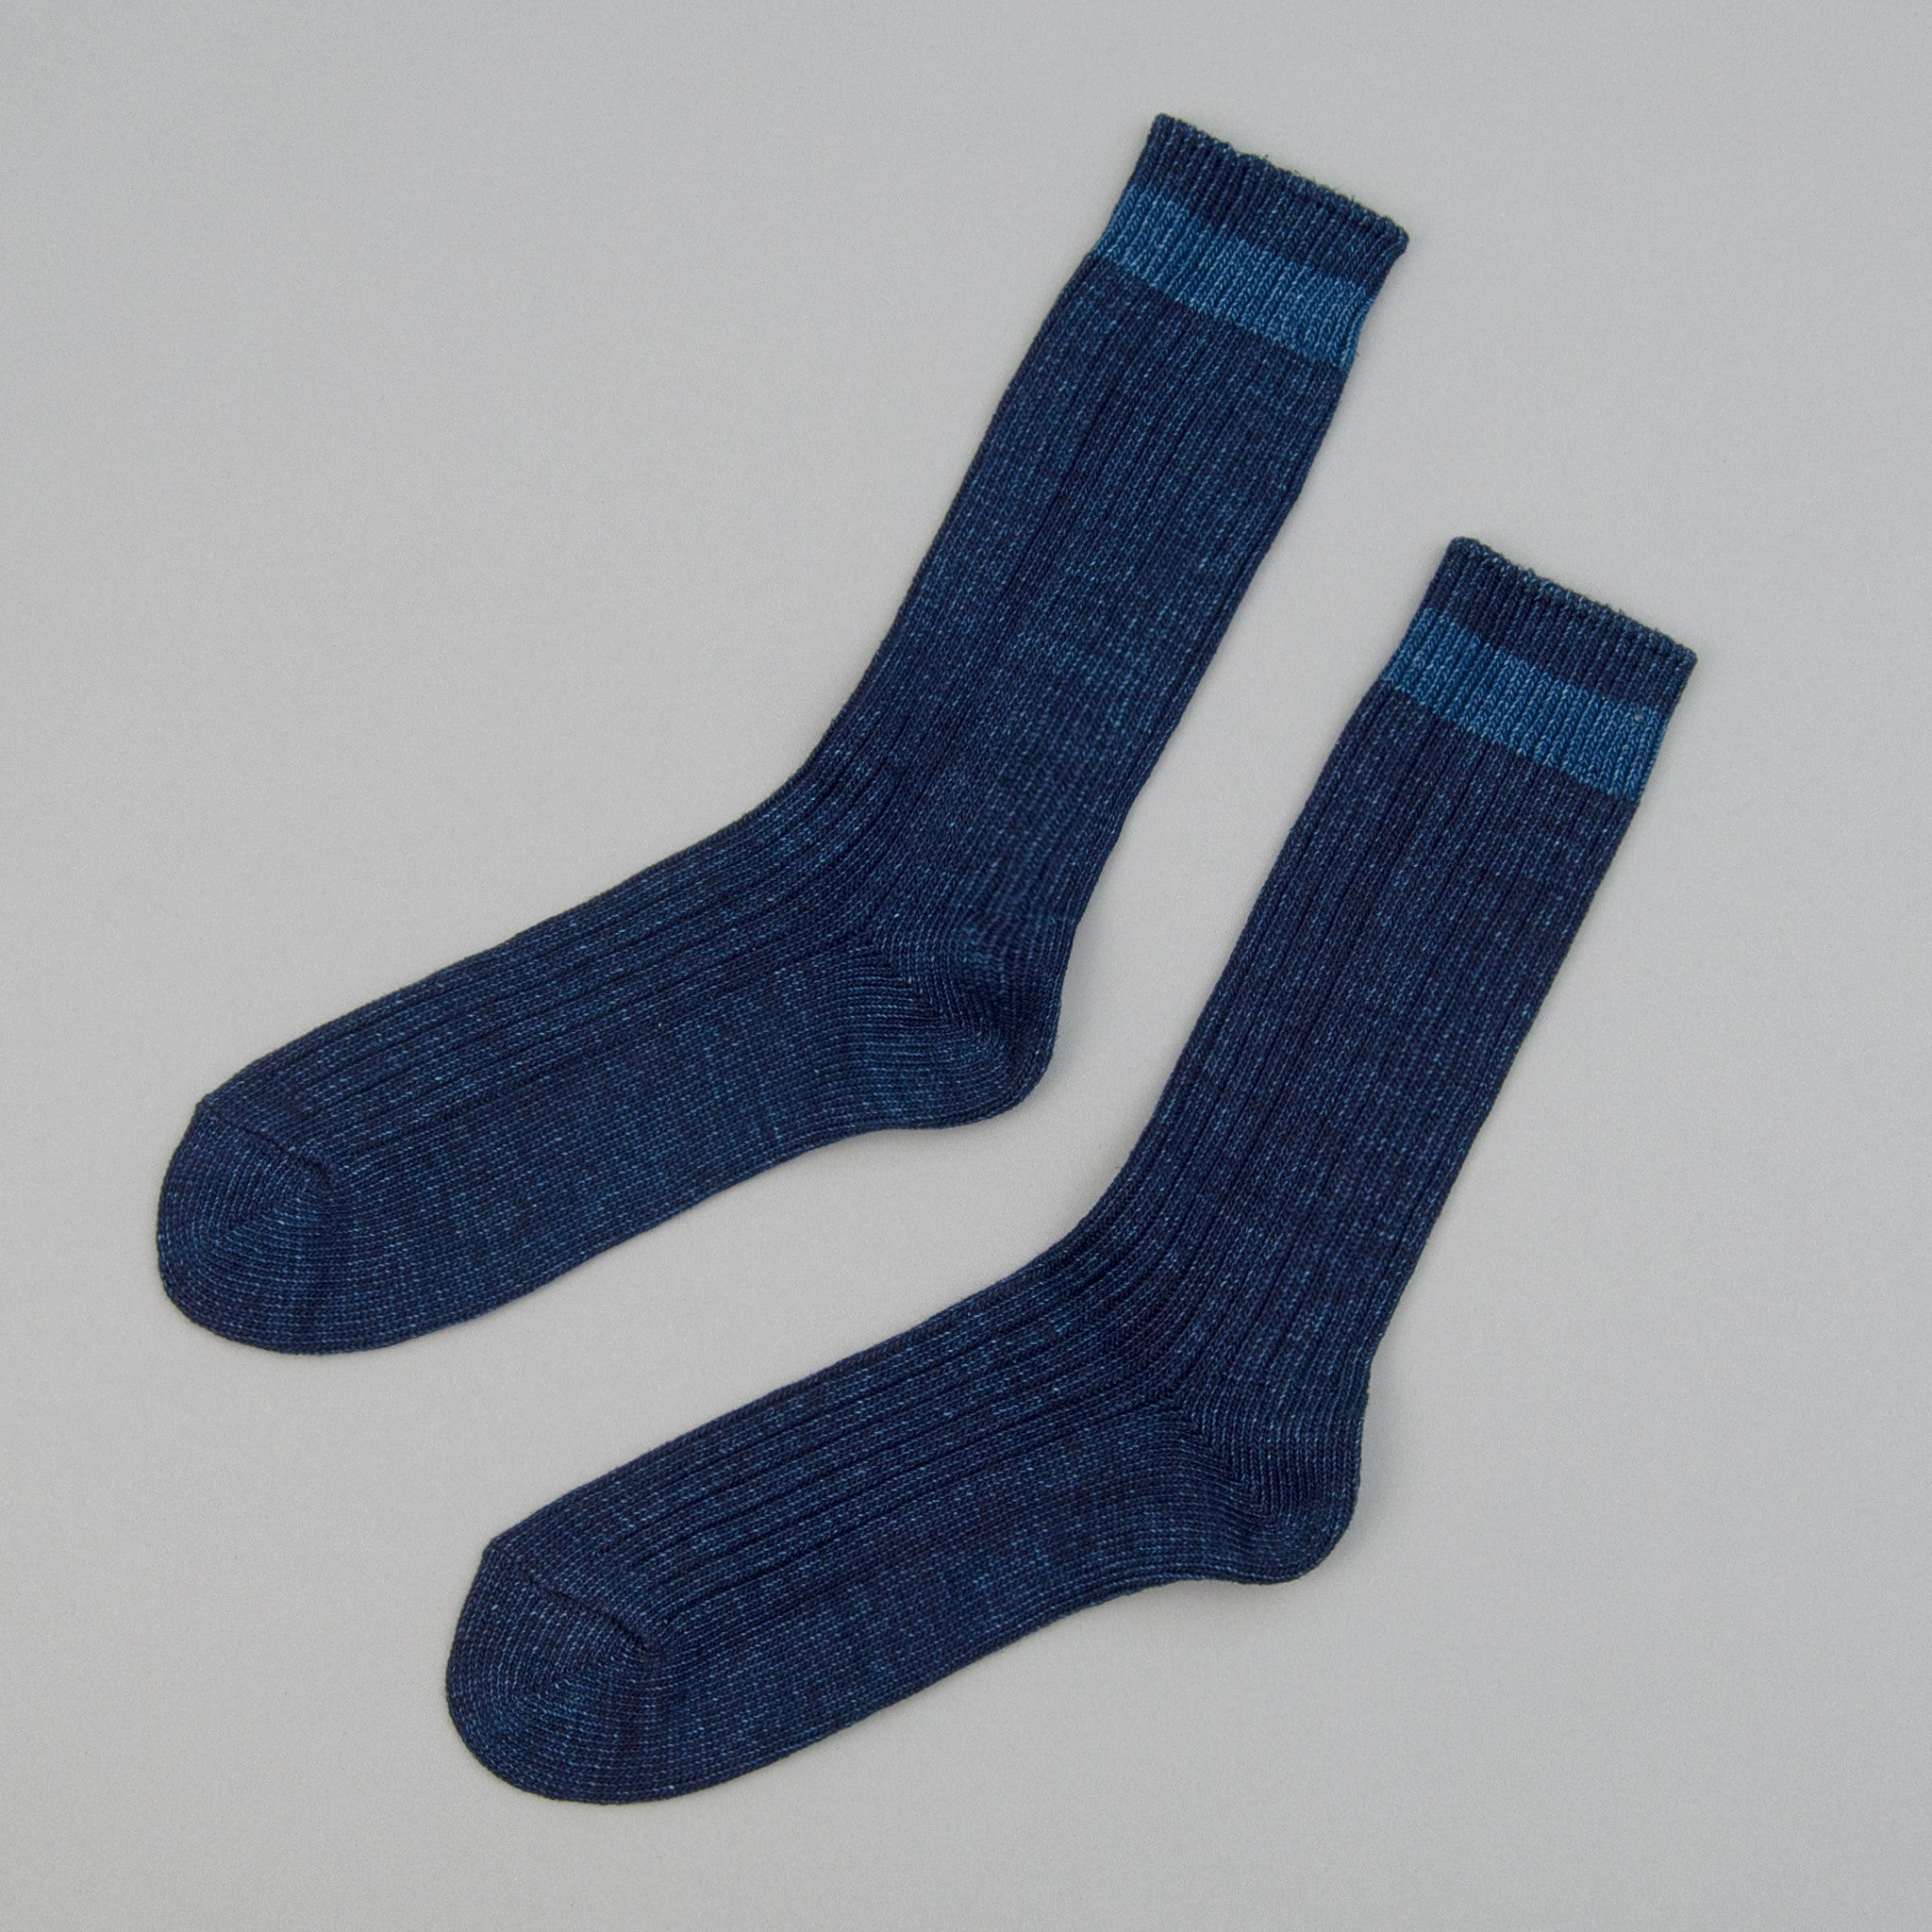 The Hill-Side - Indigo Crew Socks, Single Stripe - SX8-01 - image 1